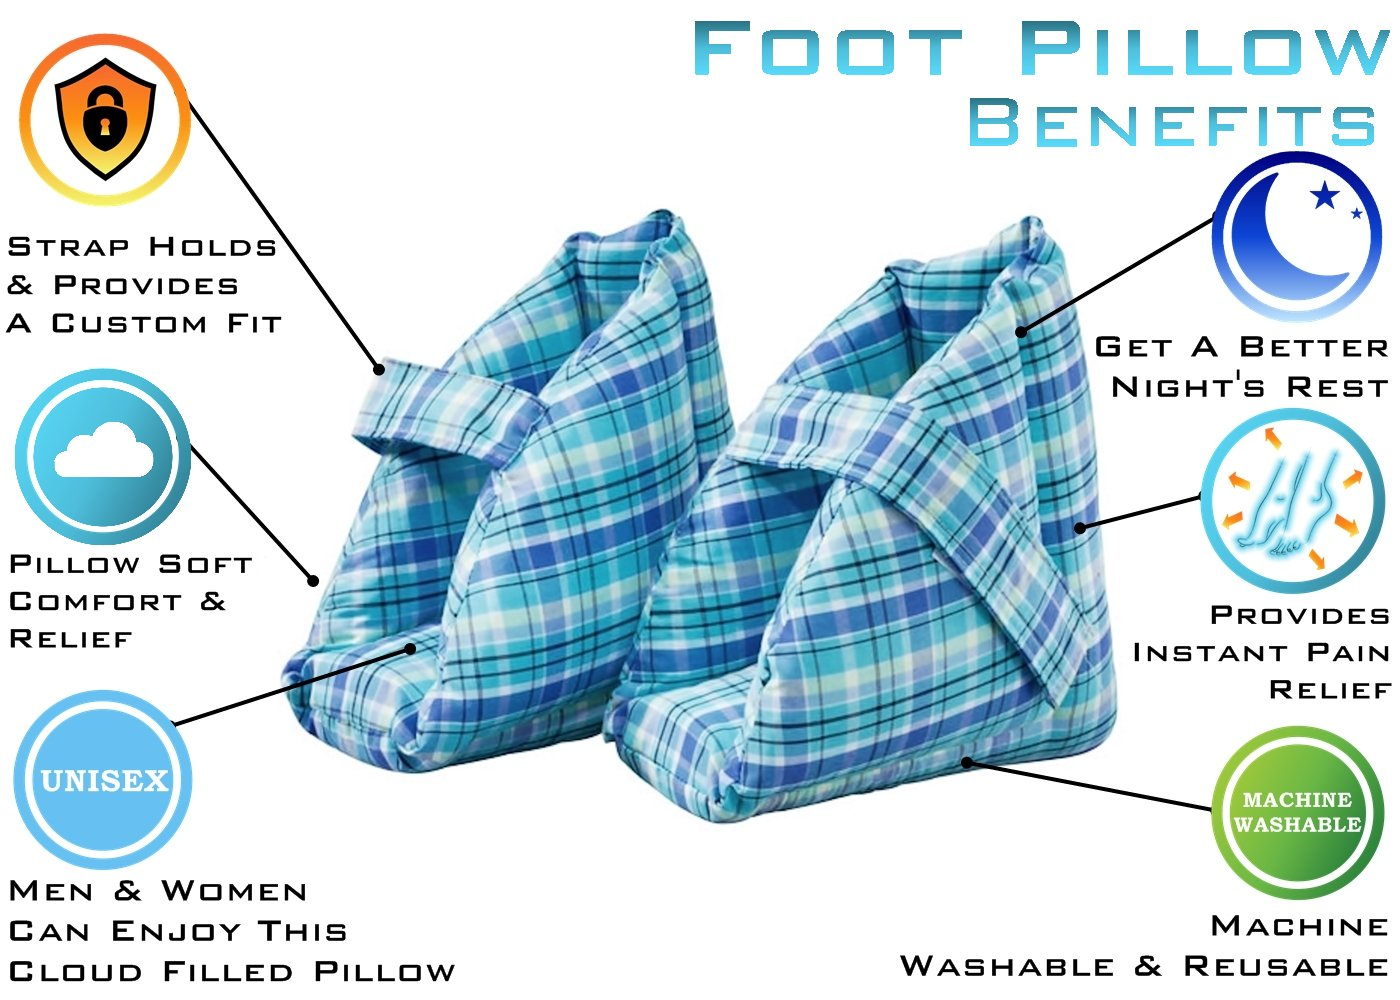 Foot Pillows, Heel Protectors, Heel Cushions, Heel Protection, Effective Pressure Sore and Heel Ulcer Relief, Great for Swollen Feet, Comfort Heel Protection Foot Pillows, One Pair, Plaid